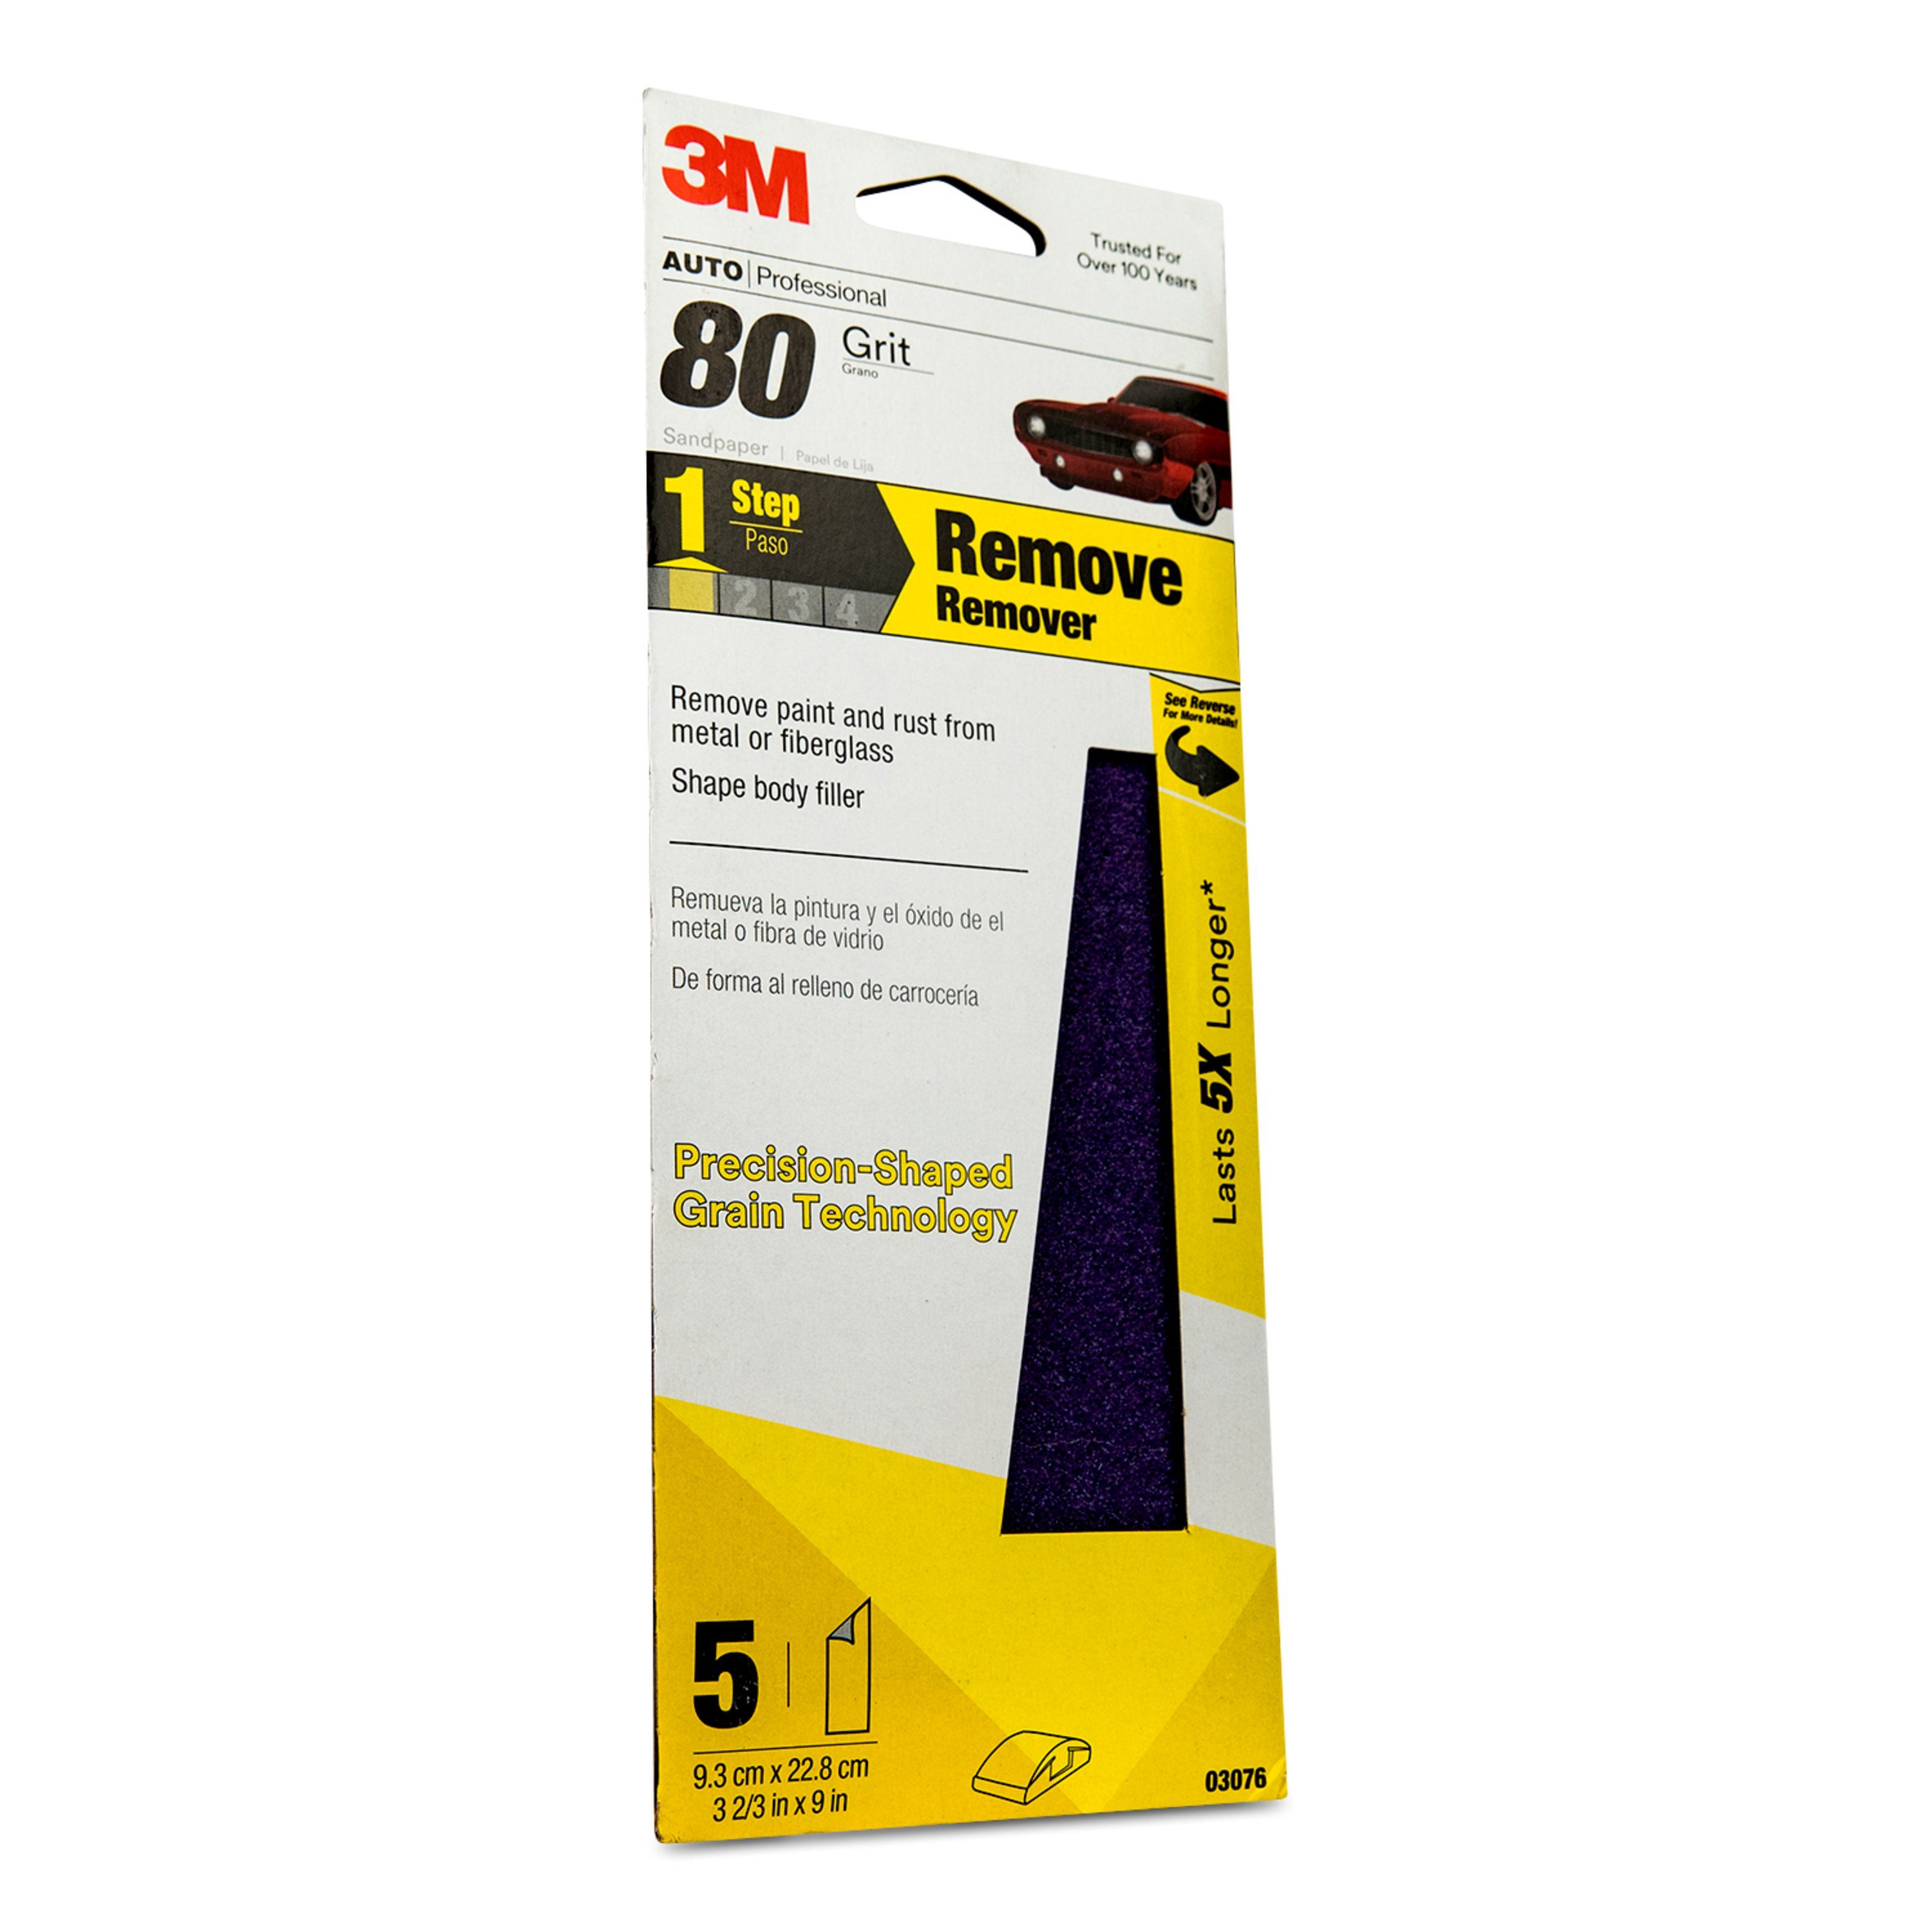 3M Precision Shaped Grain Sandpaper, 03076, 80 Grit